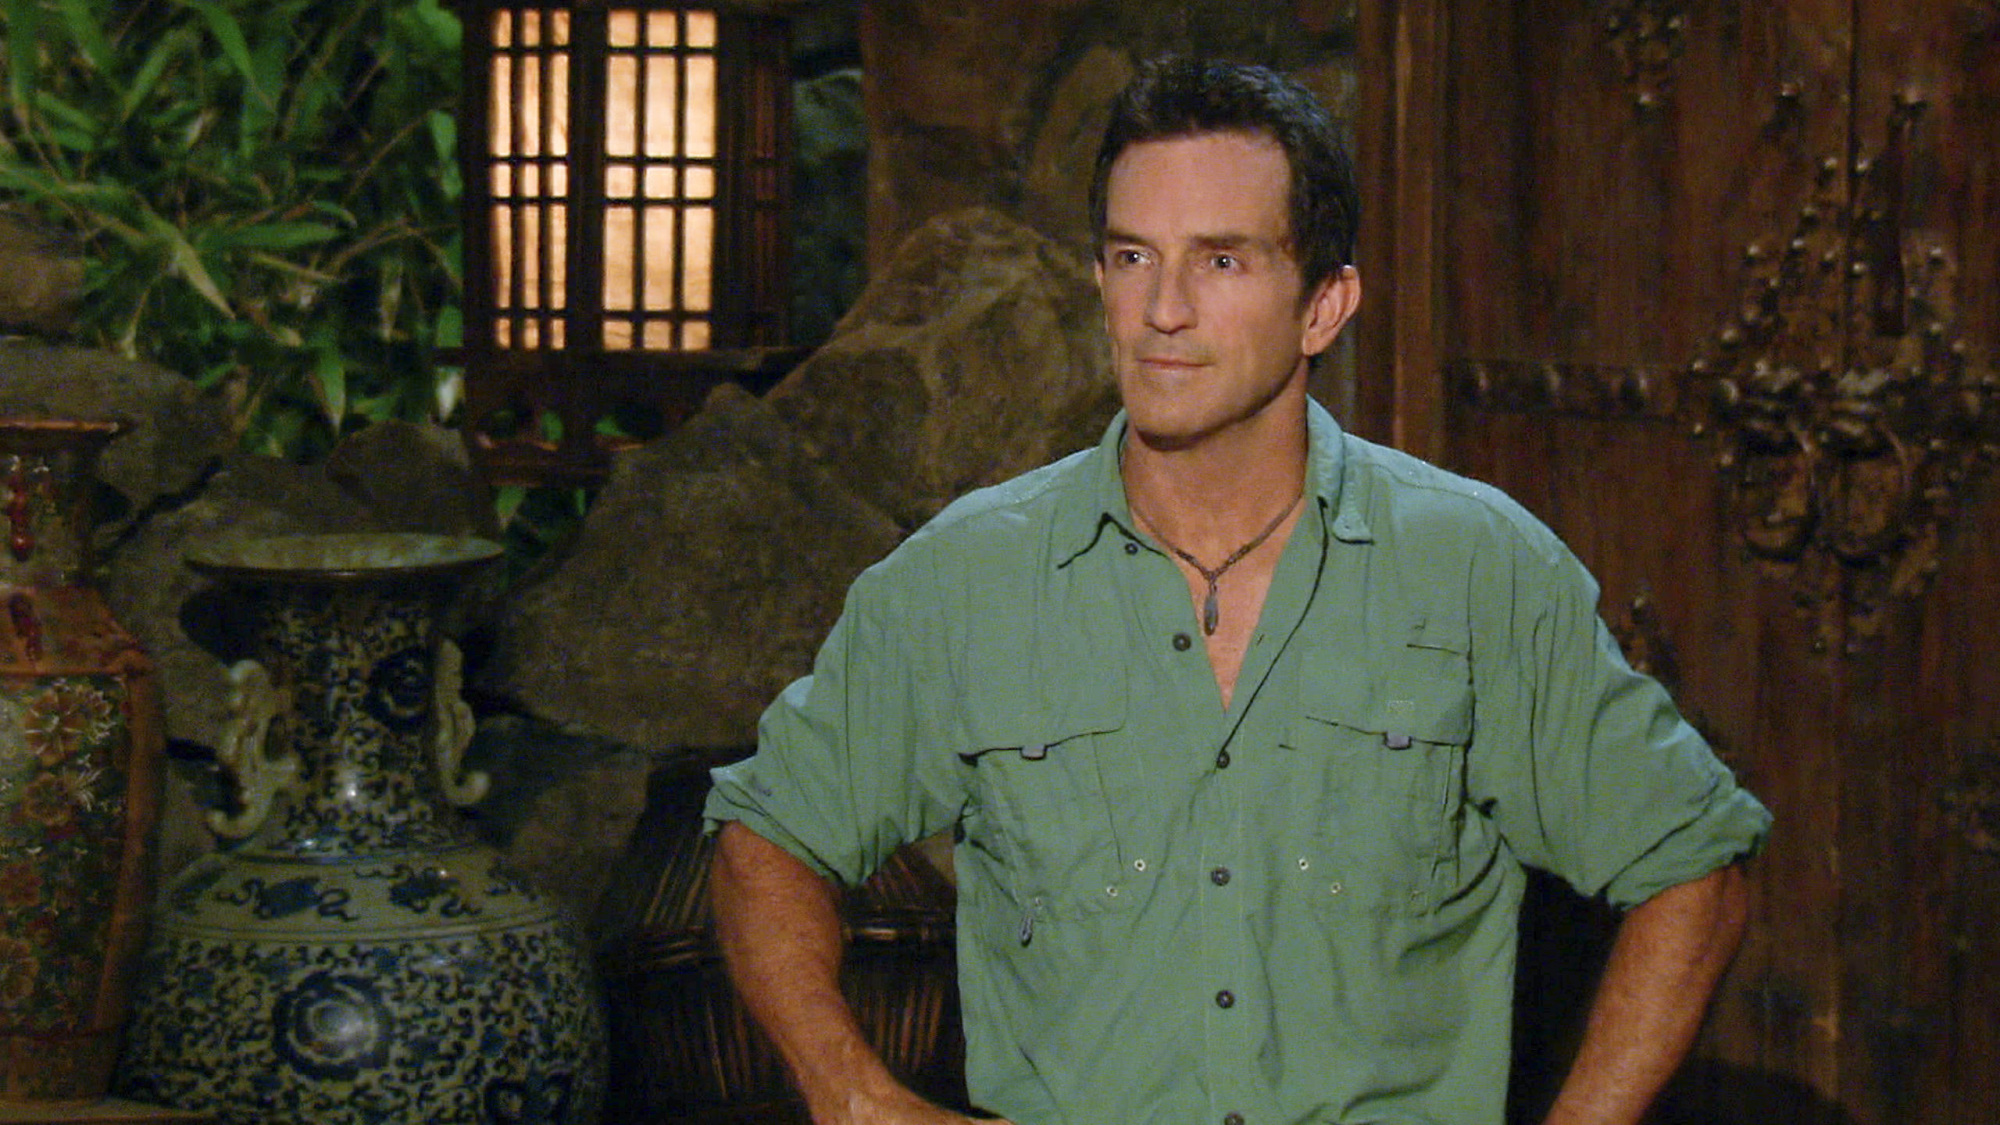 jeff Probst in Season 27 Episode 12